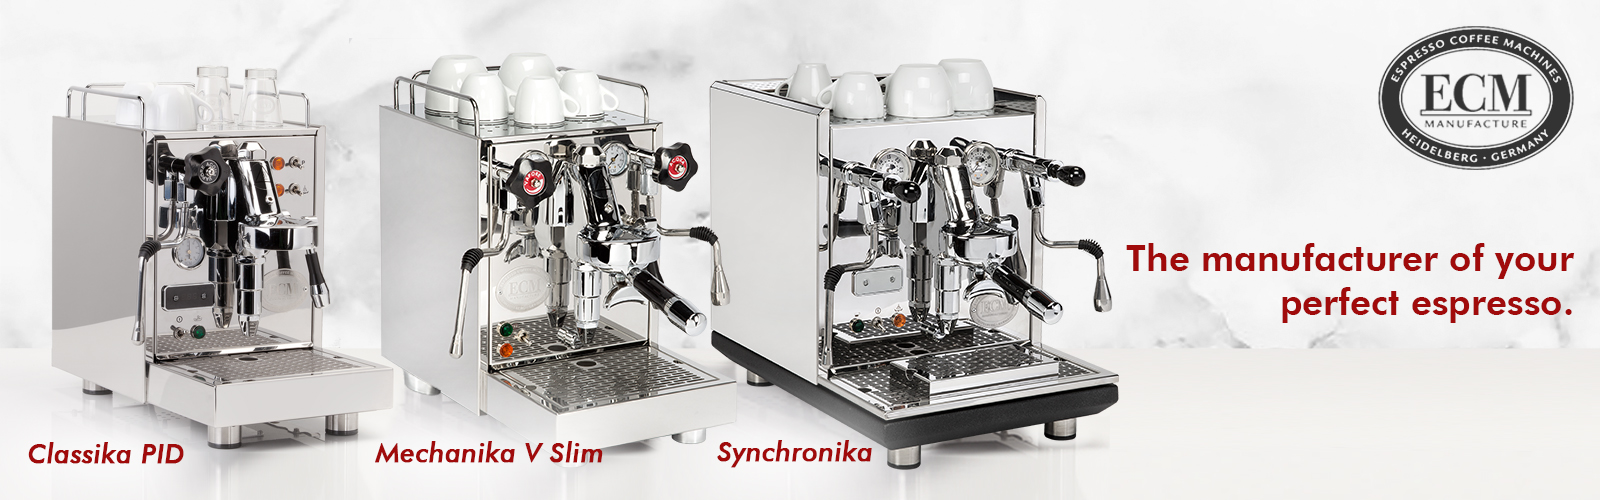 Espresso Coffee Machine – ECM